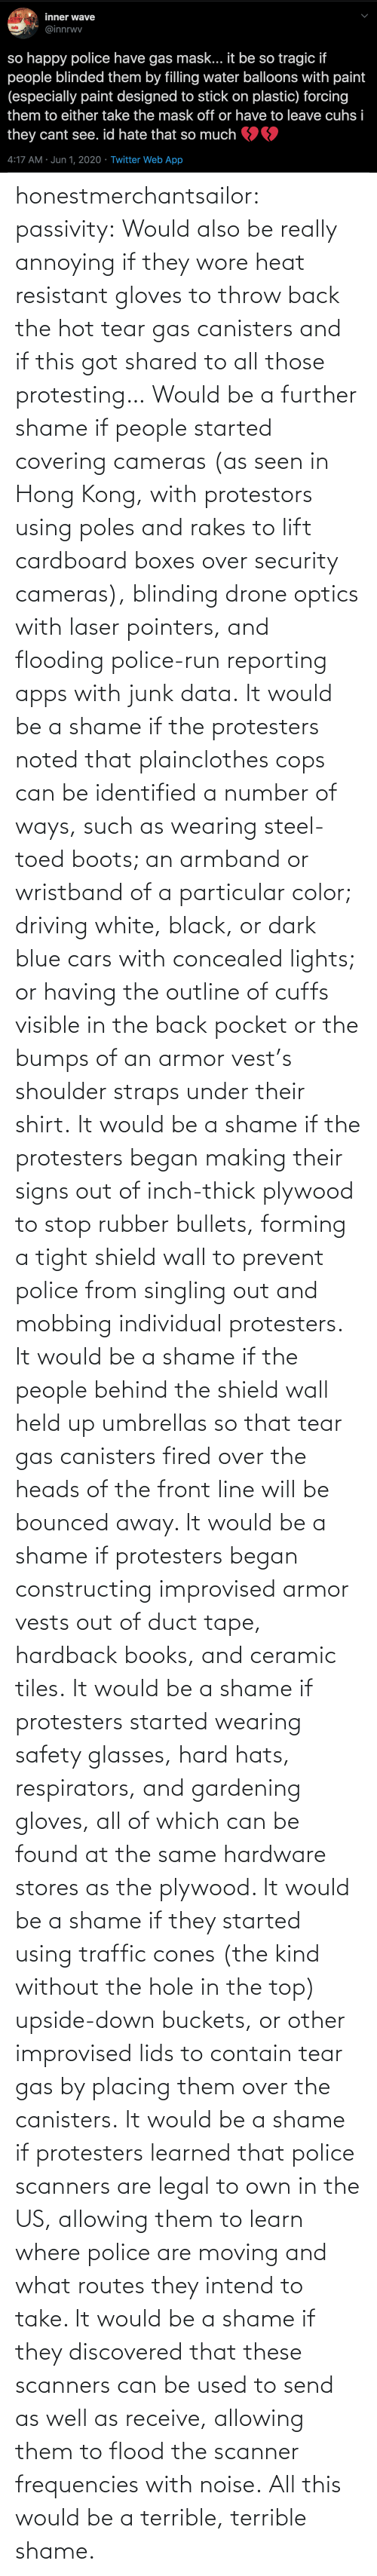 shame: honestmerchantsailor:  passivity: Would also be really annoying if they wore heat resistant gloves to throw back the hot tear gas canisters and if this got shared to all those protesting… Would be a further shame if people started covering cameras (as seen in Hong Kong, with protestors using poles and rakes to lift cardboard boxes over security cameras), blinding drone optics with laser pointers, and flooding police-run reporting apps with junk data. It would be a shame if the protesters noted that plainclothes cops can be identified a number of ways, such as wearing steel-toed boots; an armband or wristband of a particular color; driving white, black, or dark blue cars with concealed lights; or having the outline of cuffs visible in the back pocket or the bumps of an armor vest's shoulder straps under their shirt. It would be a shame if the protesters began making their signs out of inch-thick plywood to stop rubber bullets, forming a tight shield wall to prevent police from singling out and mobbing individual protesters. It would be a shame if the people behind the shield wall held up umbrellas so that tear gas canisters fired over the heads of the front line will be bounced away. It would be a shame if protesters began constructing improvised armor vests out of duct tape, hardback books, and ceramic tiles. It would be a shame if protesters started wearing safety glasses, hard hats, respirators, and gardening gloves, all of which can be found at the same hardware stores as the plywood. It would be a shame if they started using traffic cones (the kind without the hole in the top) upside-down buckets, or other improvised lids to contain tear gas by placing them over the canisters. It would be a shame if protesters learned that police scanners are legal to own in the US, allowing them to learn where police are moving and what routes they intend to take. It would be a shame if they discovered that these scanners can be used to send as well as receive, allowing them to flood the scanner frequencies with noise. All this would be a terrible, terrible shame.